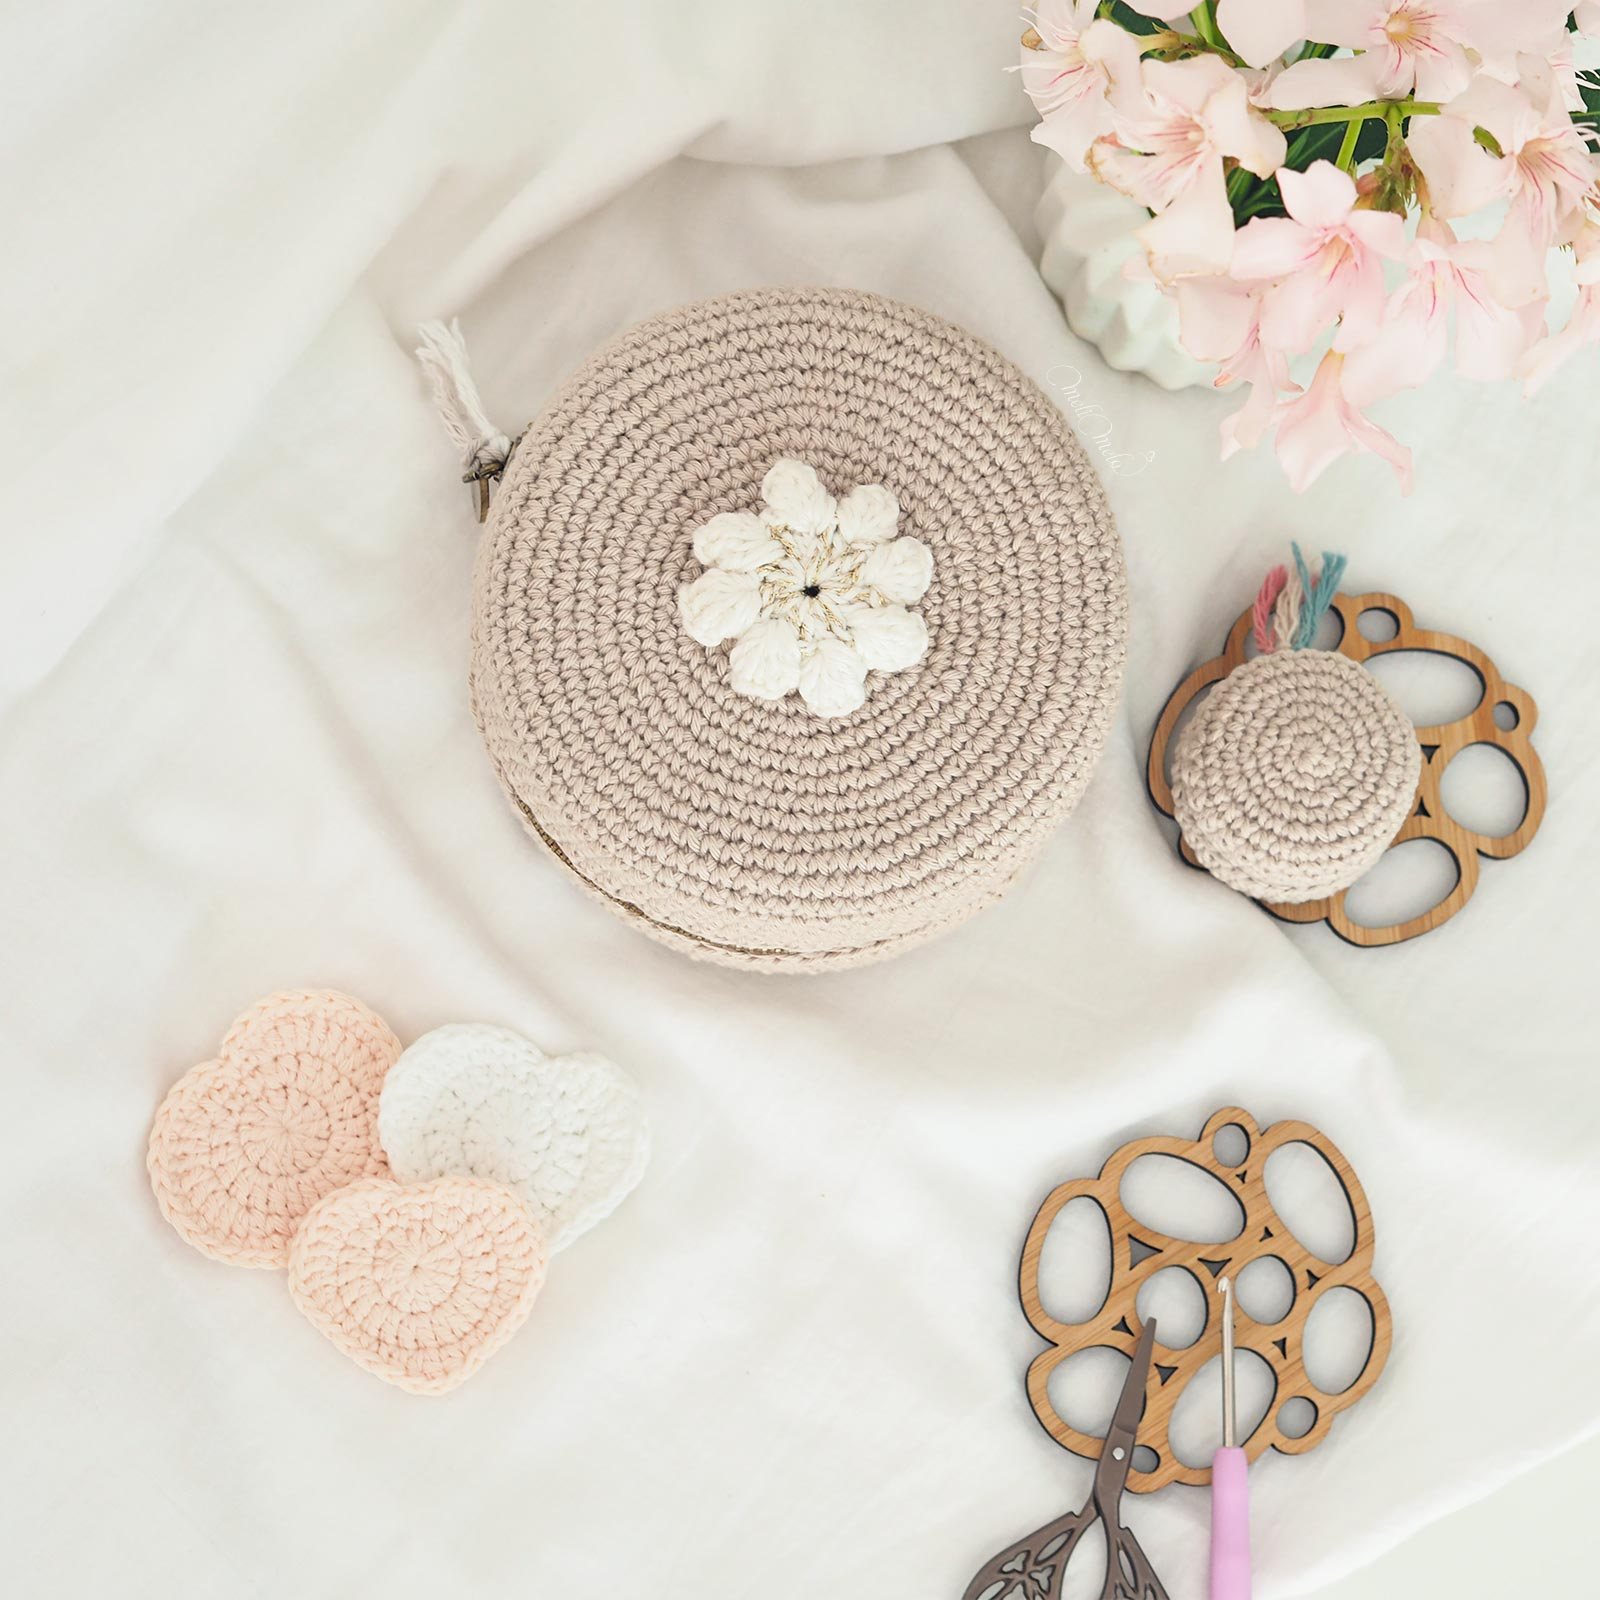 écrins macaron upcycling crochet ricorumi tuto chouettekit laboutiquedemelimelo